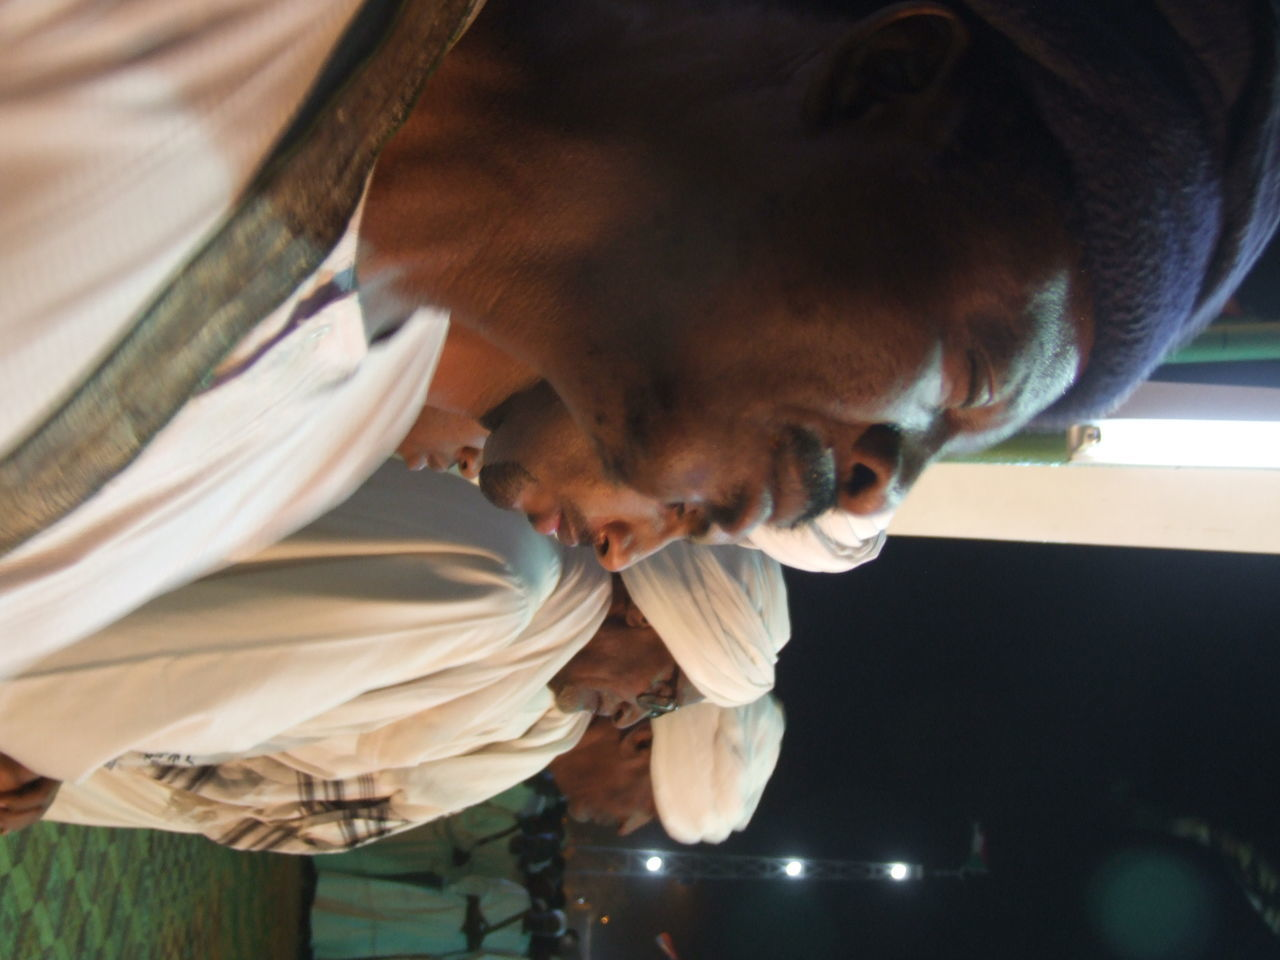 Lost in the Divine ...a man does zikr , remembers Allah Ecstasy Khartoum Meditation Remembering The Divine Searching For The Divine Within Spirituality Sudan Sufi Sufism The Word Of God The World Within Trance Zikr